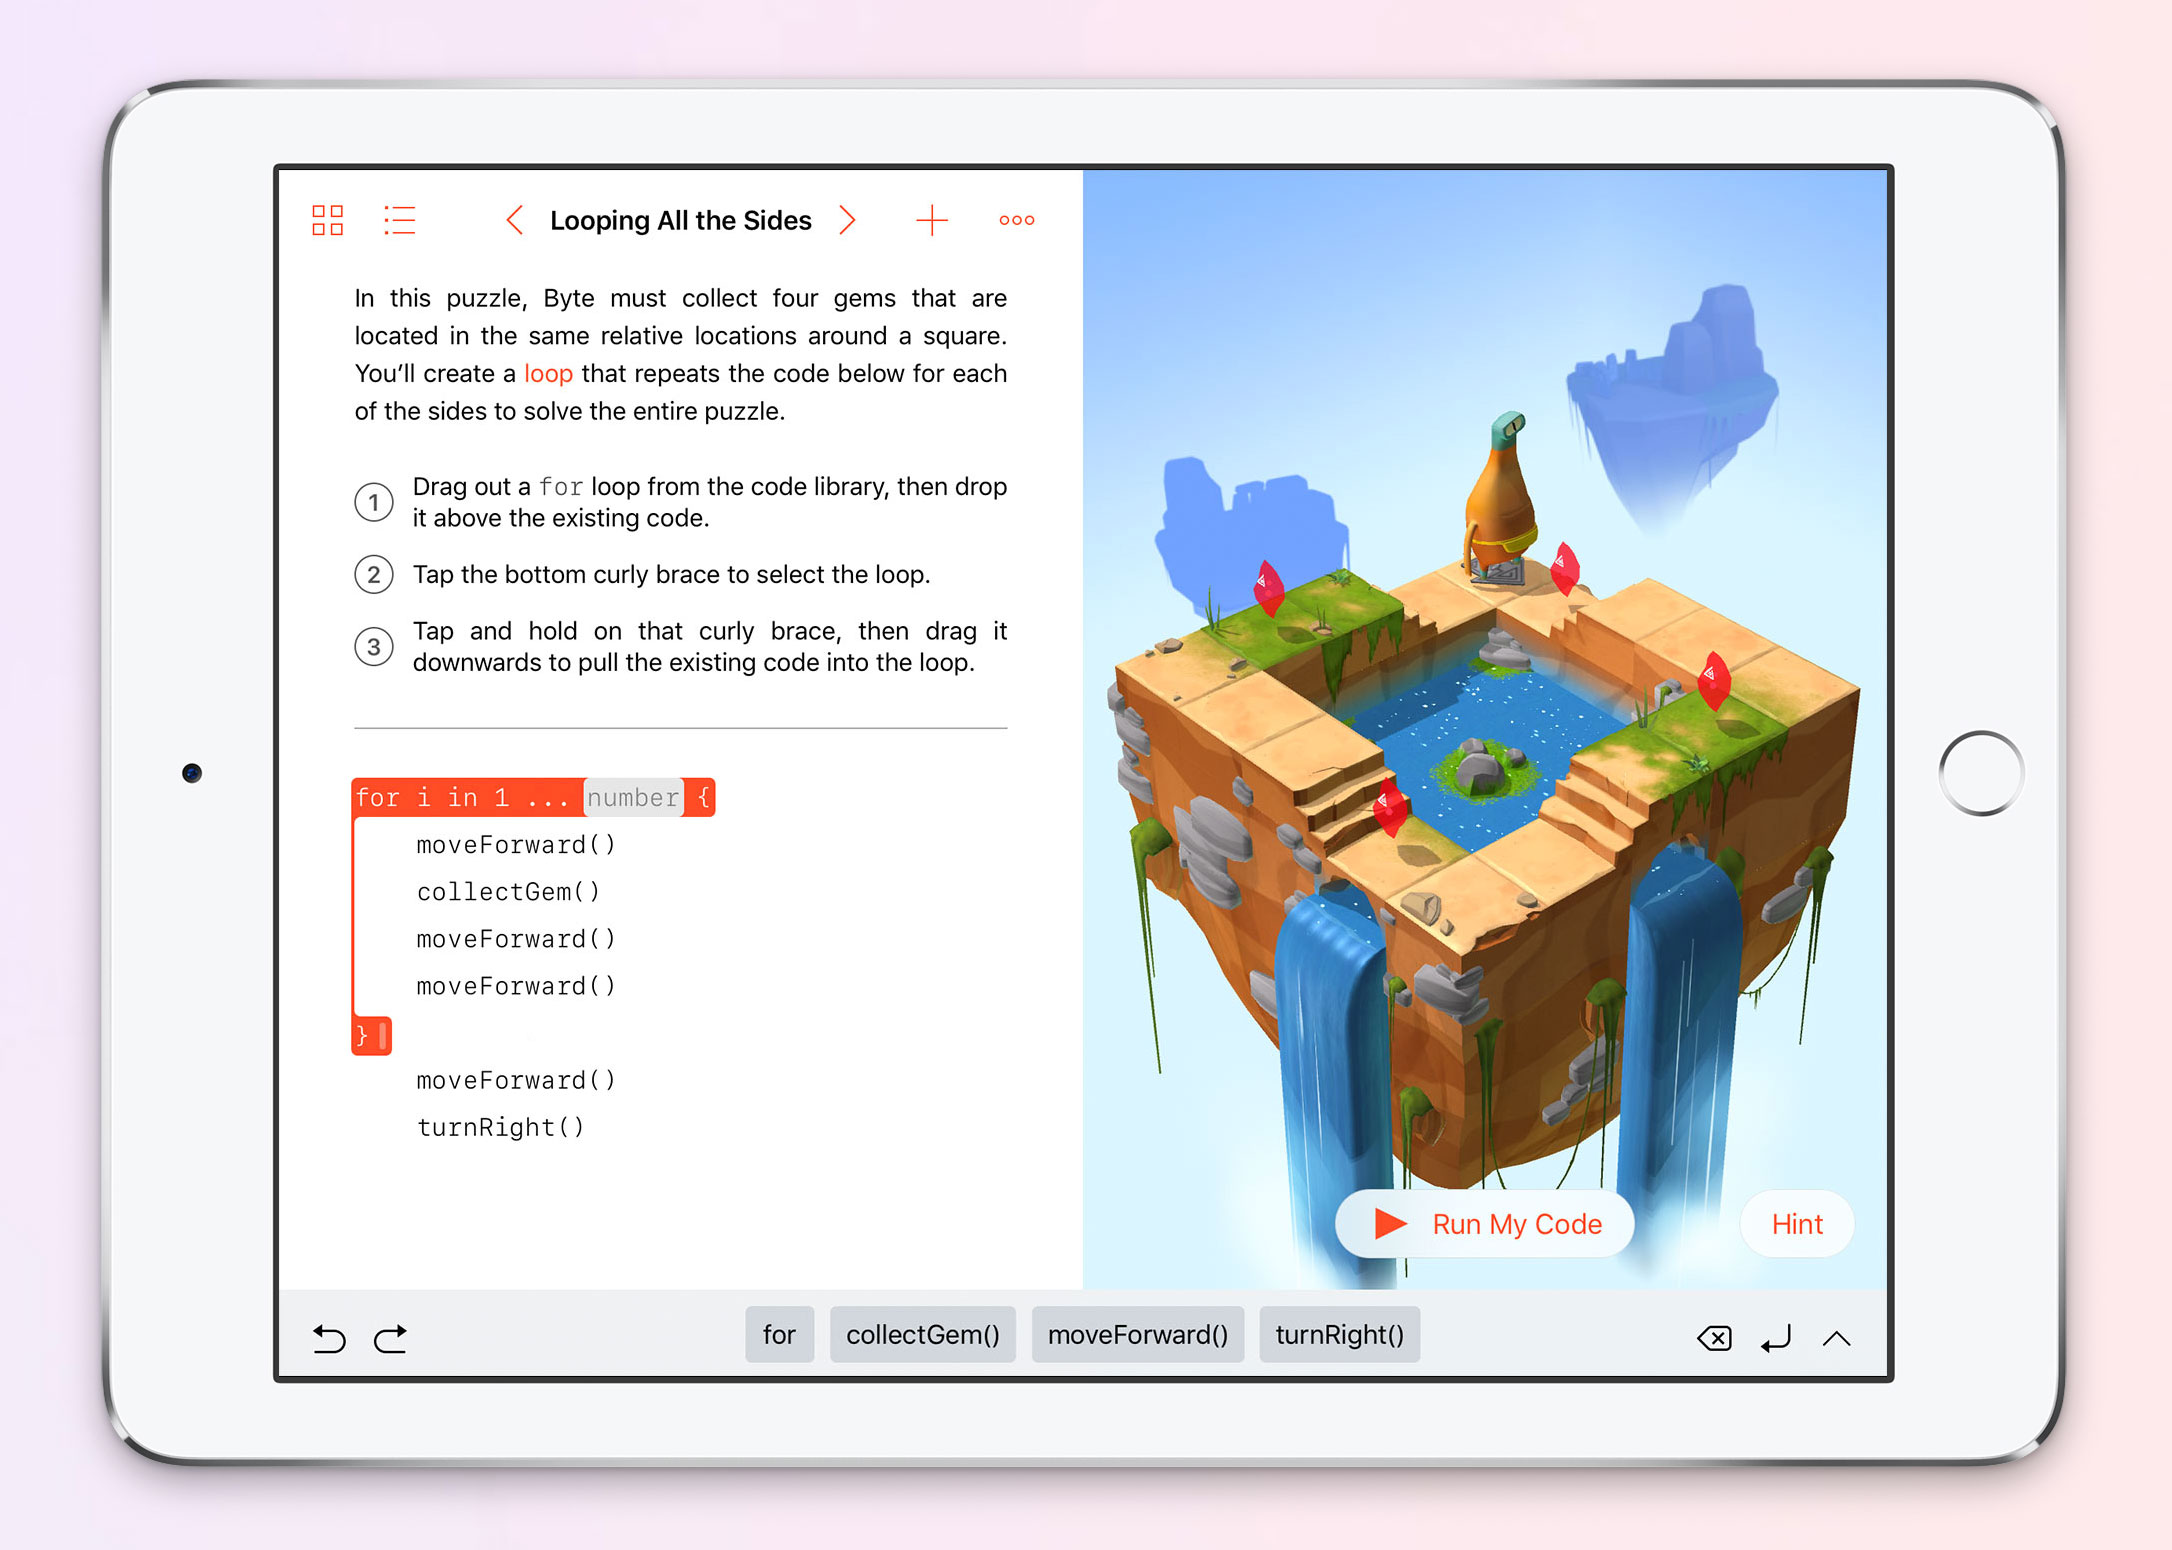 Swift Playgrounds includes lessons like programming a for loop that repeats a character's actions.